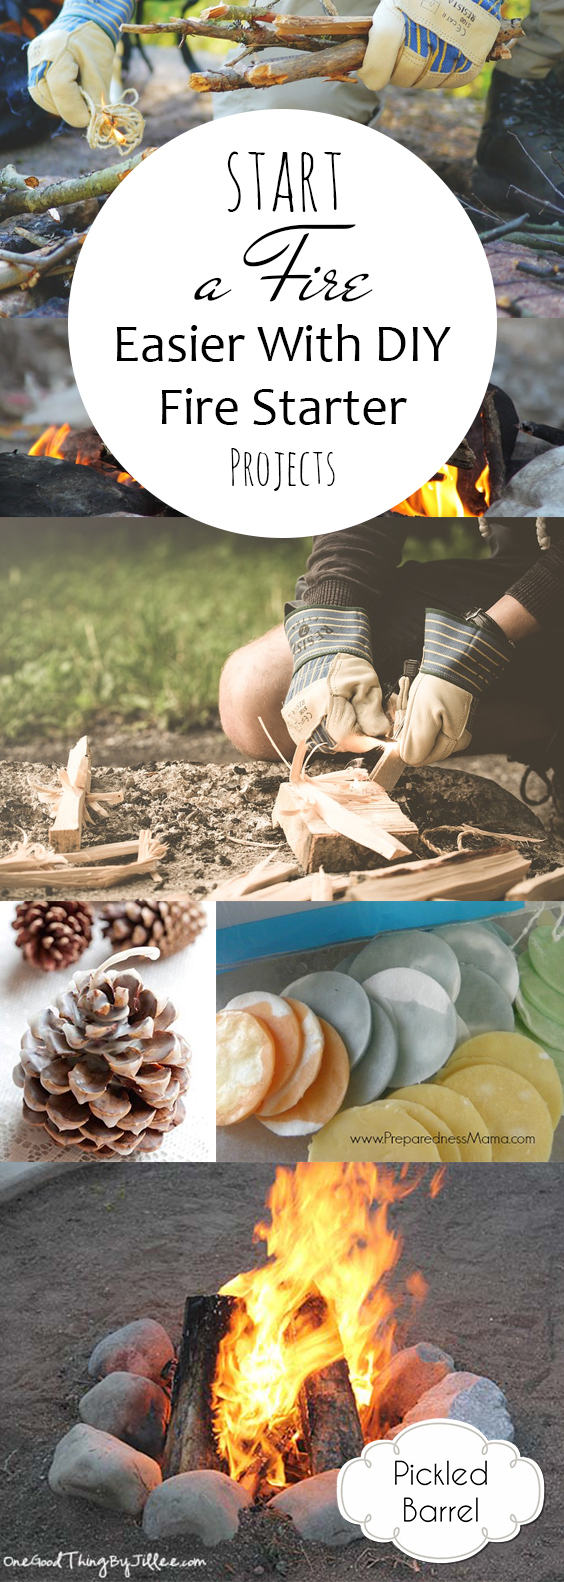 Start a Fire Easier With DIY Fire Starter Projects| DIY Fire Starter, Fire Starter Projects, Make Your Own Fire Starters, Homemade Fire Starters, Easy to Make Fire Starters, Popular Pin